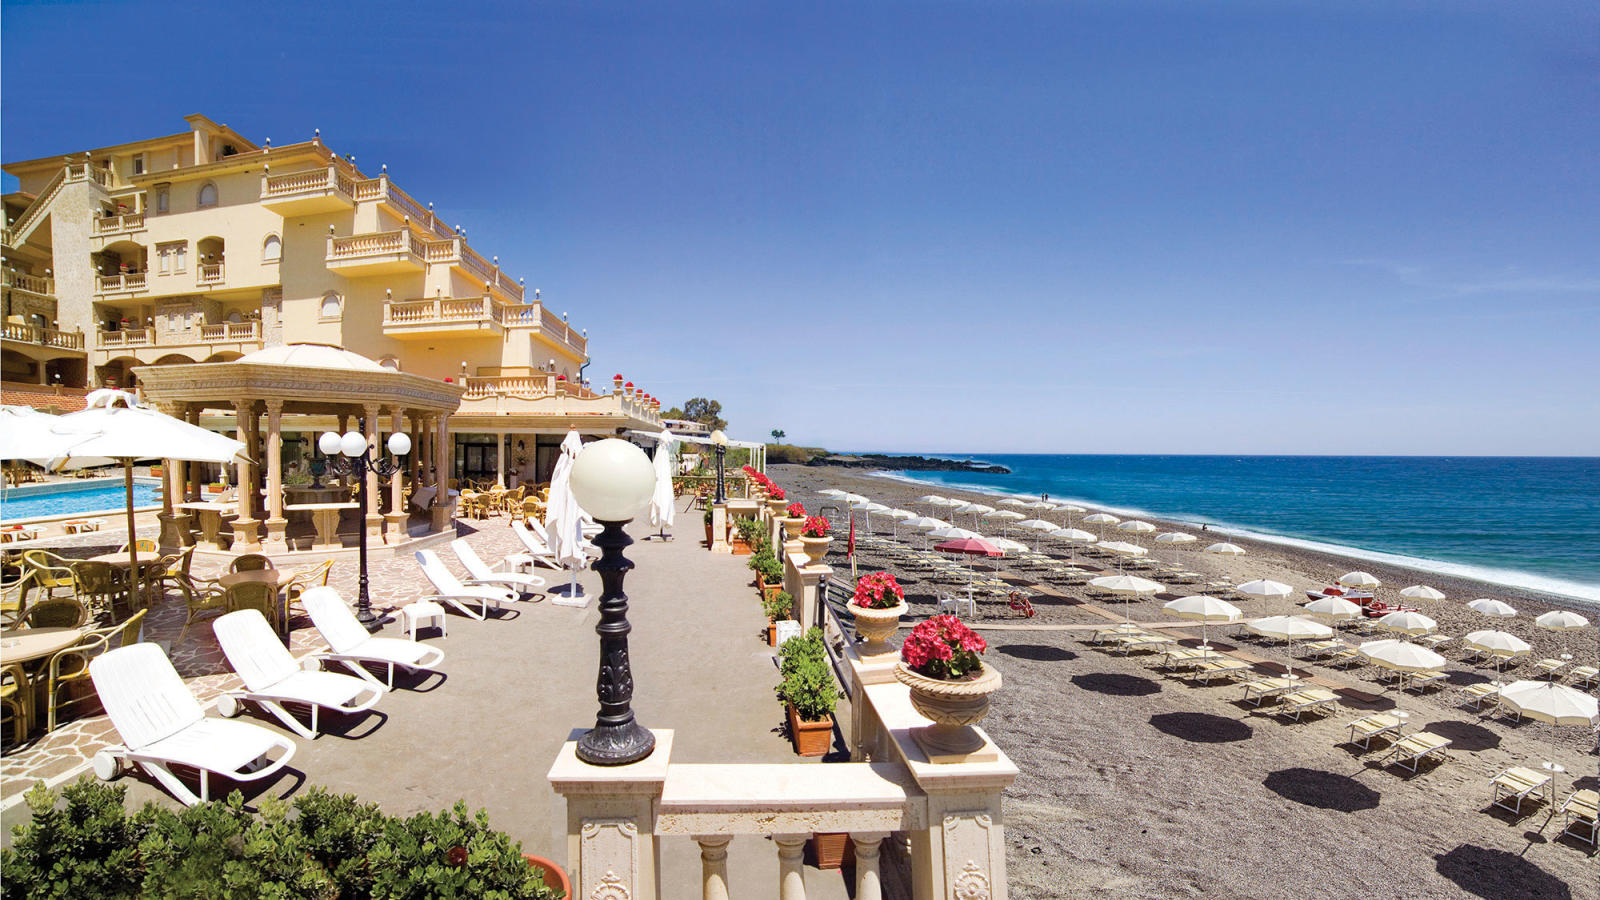 Giardini Naxos Italy  city photos : Giardini Naxos Holidays, Sicily Holidays with Topflight